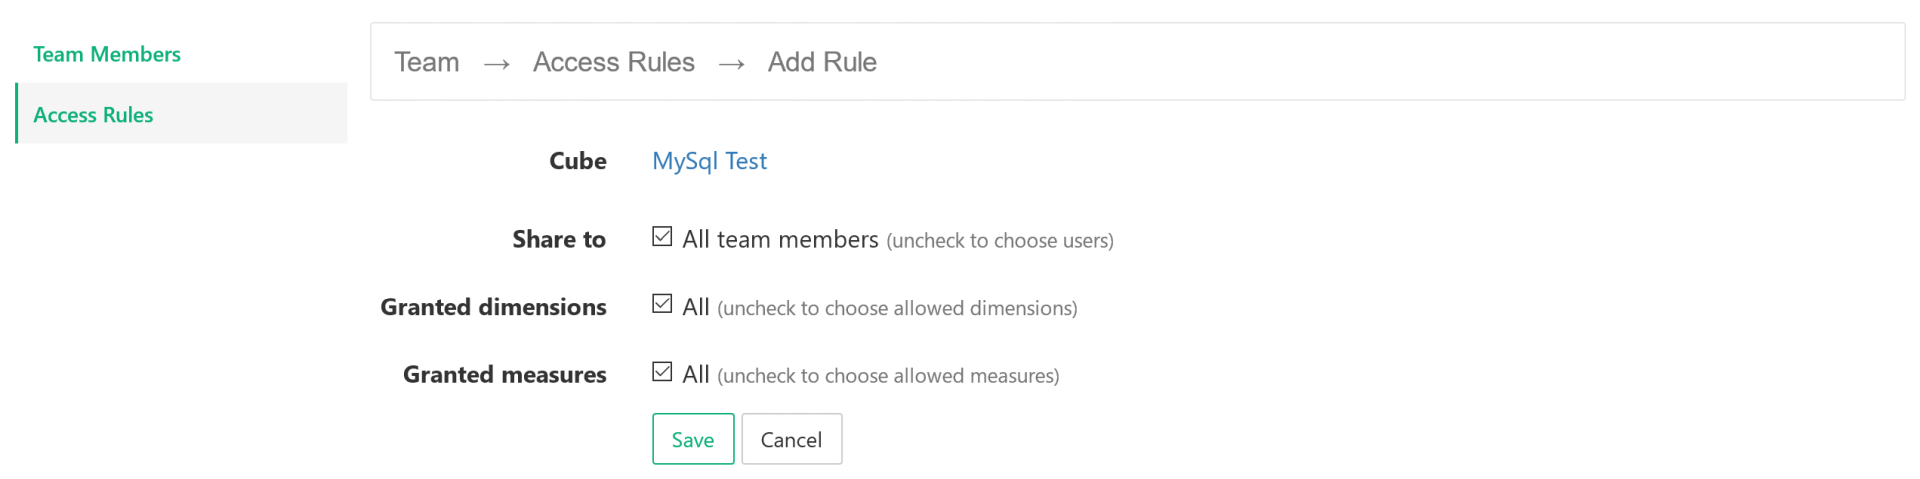 Team sharing: cube access rule